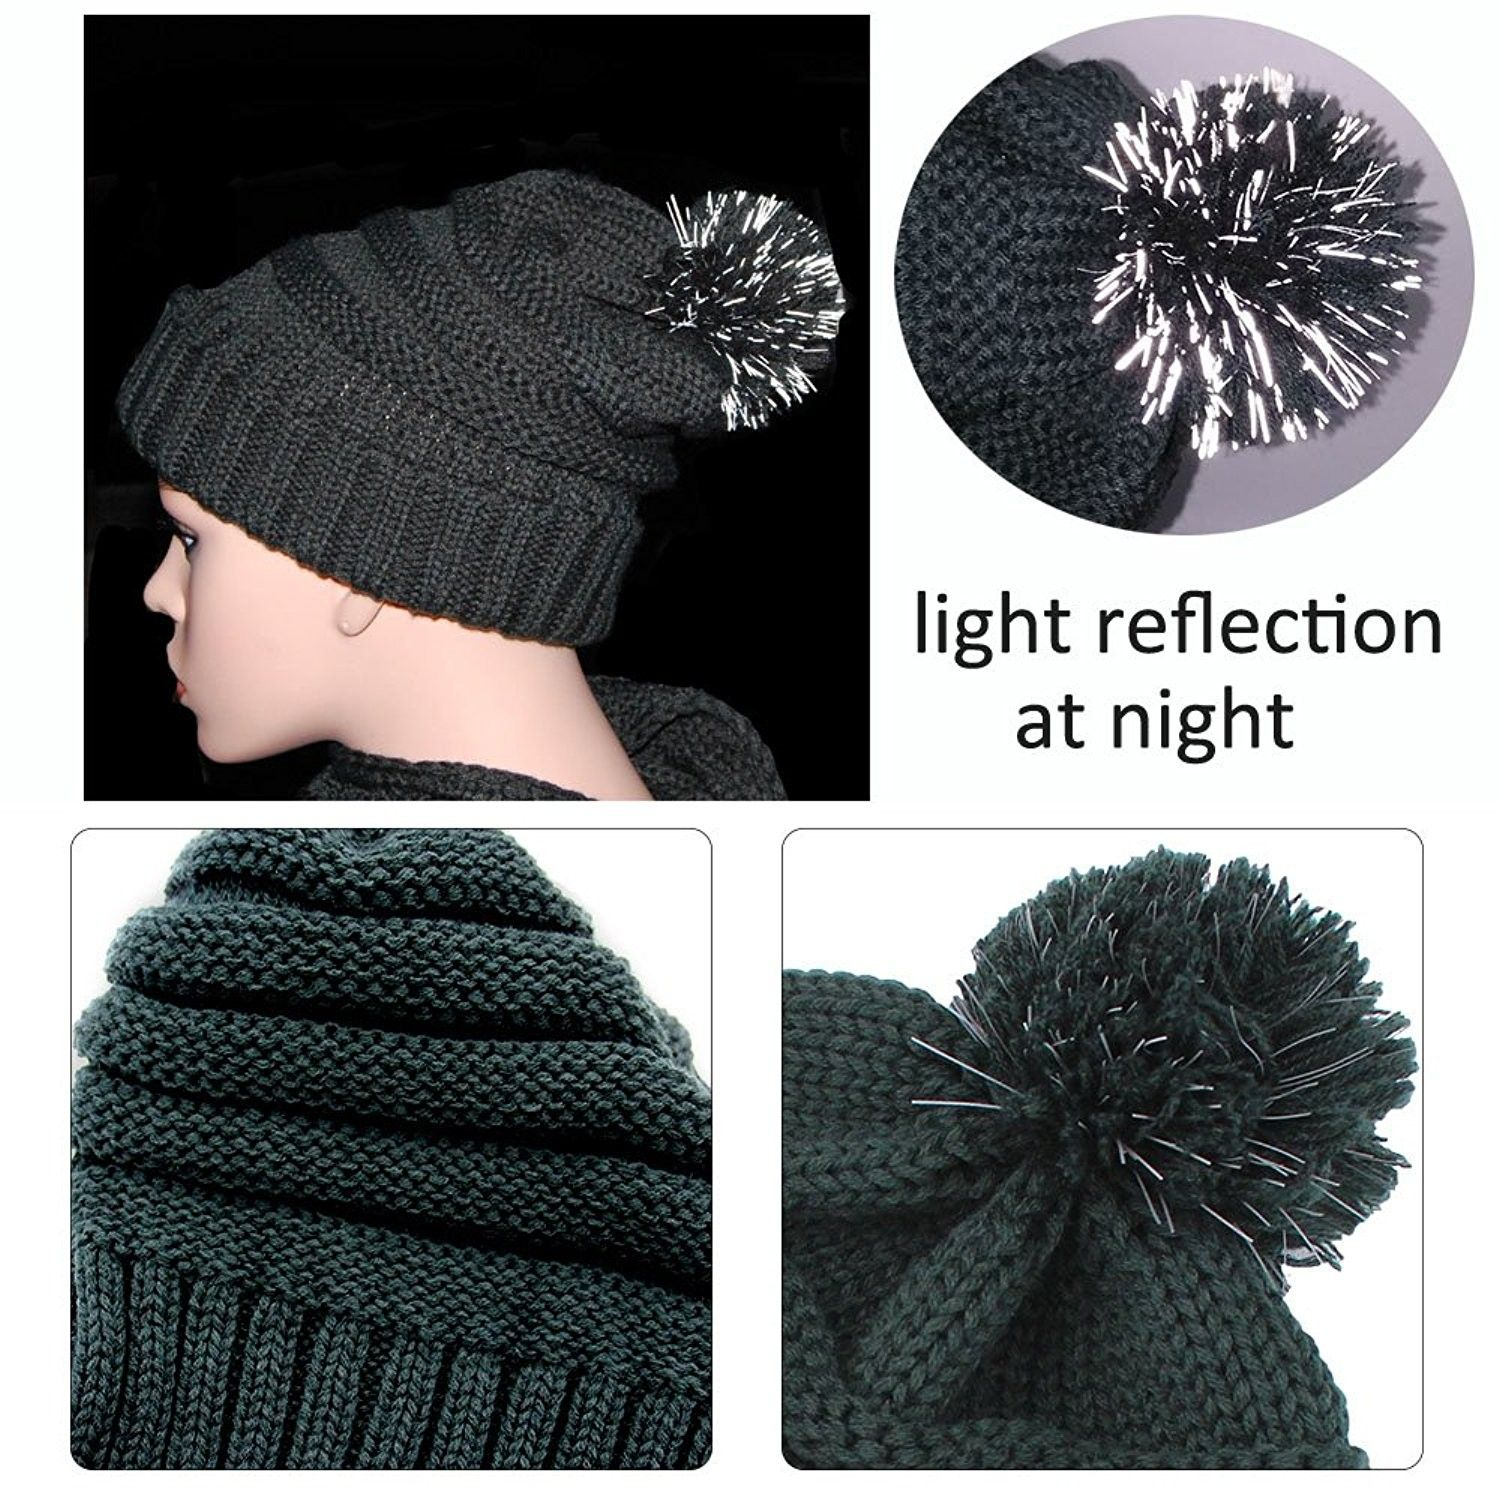 Knit Hat Scarf Gloves Set Women Men Unisex Cable Knit Winter Cold Weather Gift Set Forest Green Cp187mxx89u Cold Weather Gift Winter Knits Knitted Hats